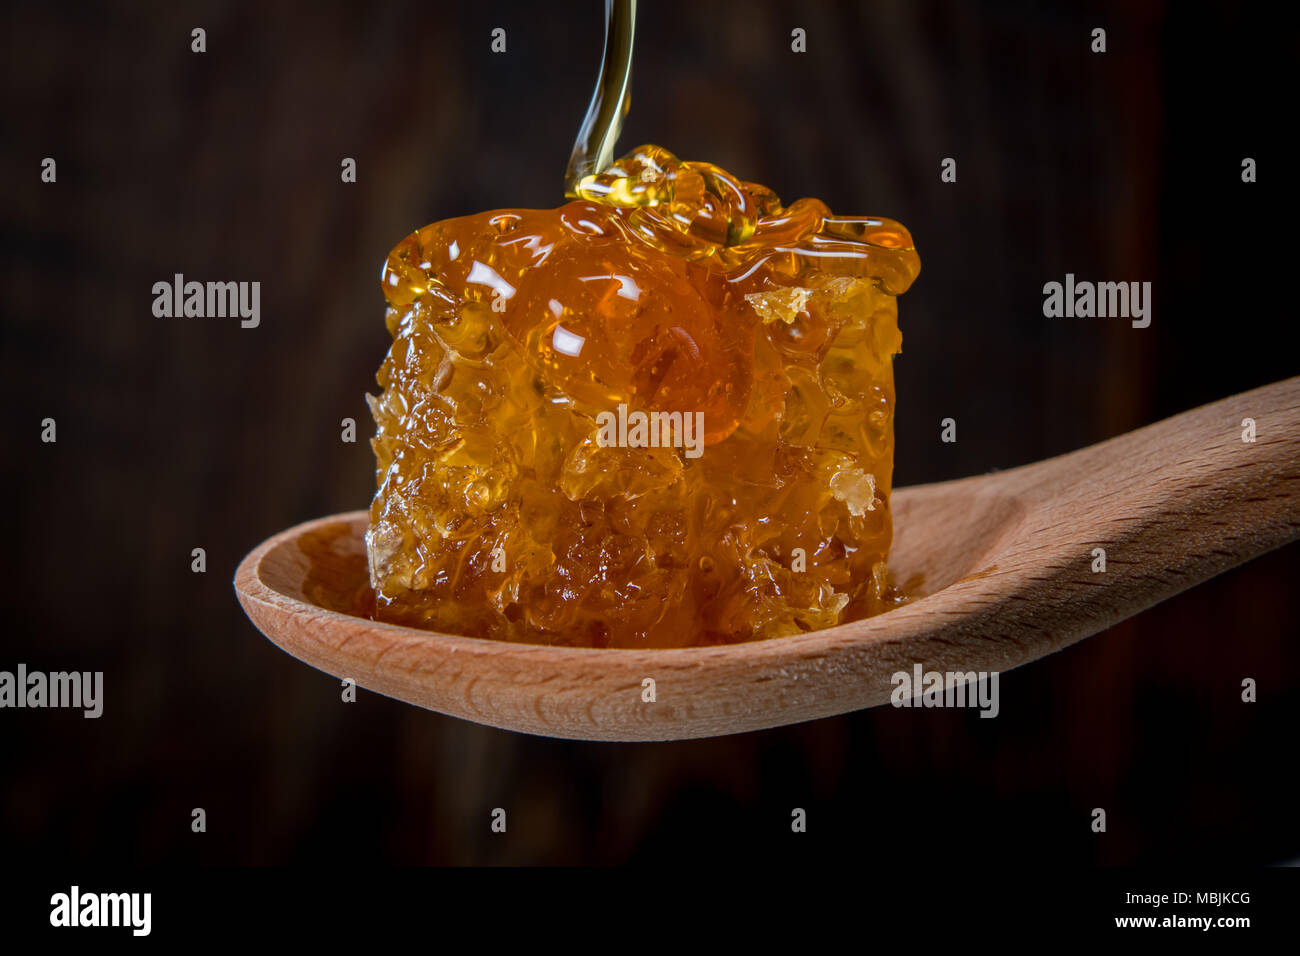 Drizzling Honey Over Comb sitting in wooden spoon - Stock Image